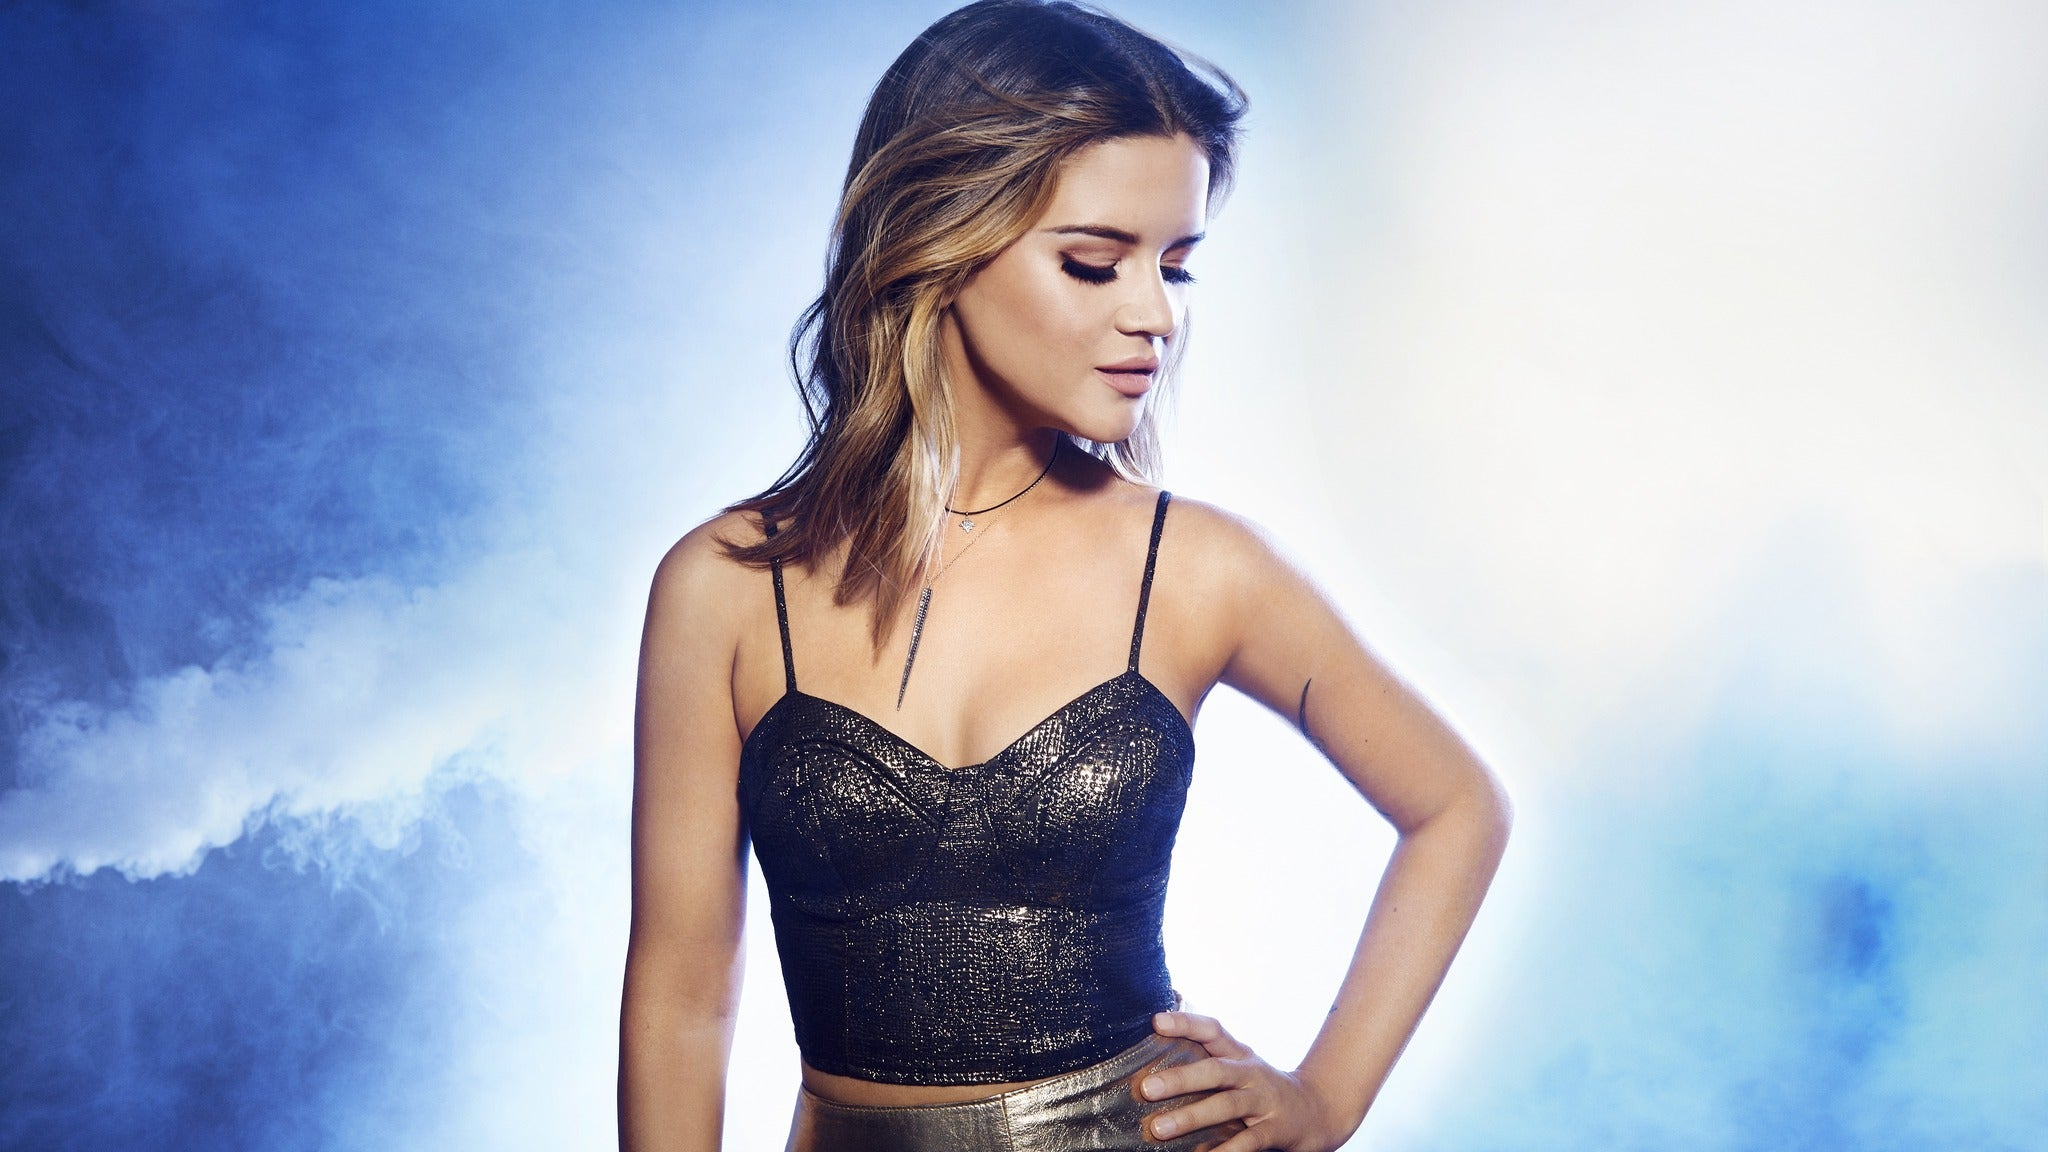 Maren Morris: RSVP The Tour at Mizner Park Amphitheater